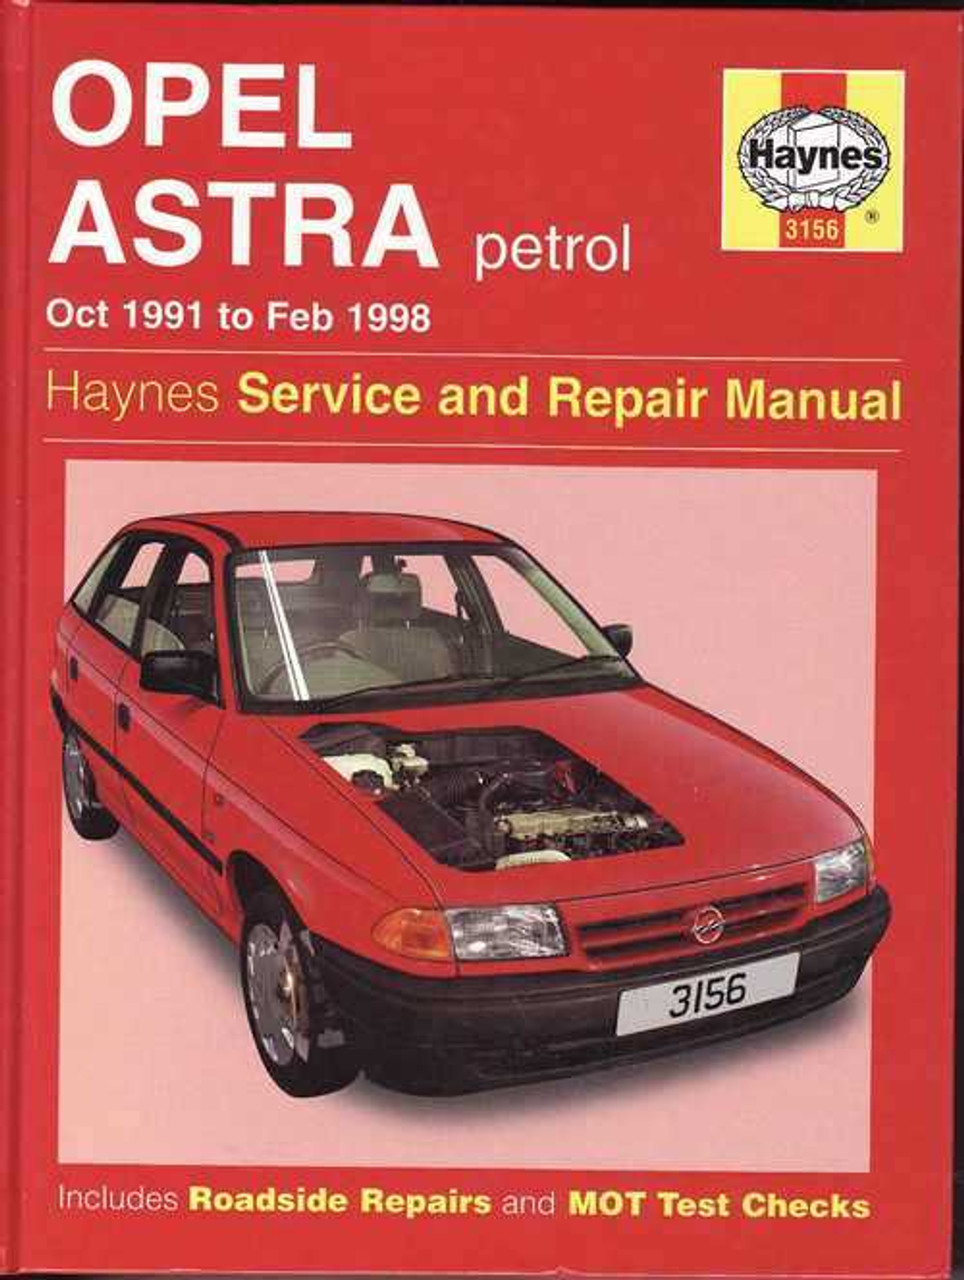 small resolution of opel astra 1995 wiring diagram schematic diagramholden astra opel petrol 1991 1998 workshop manual